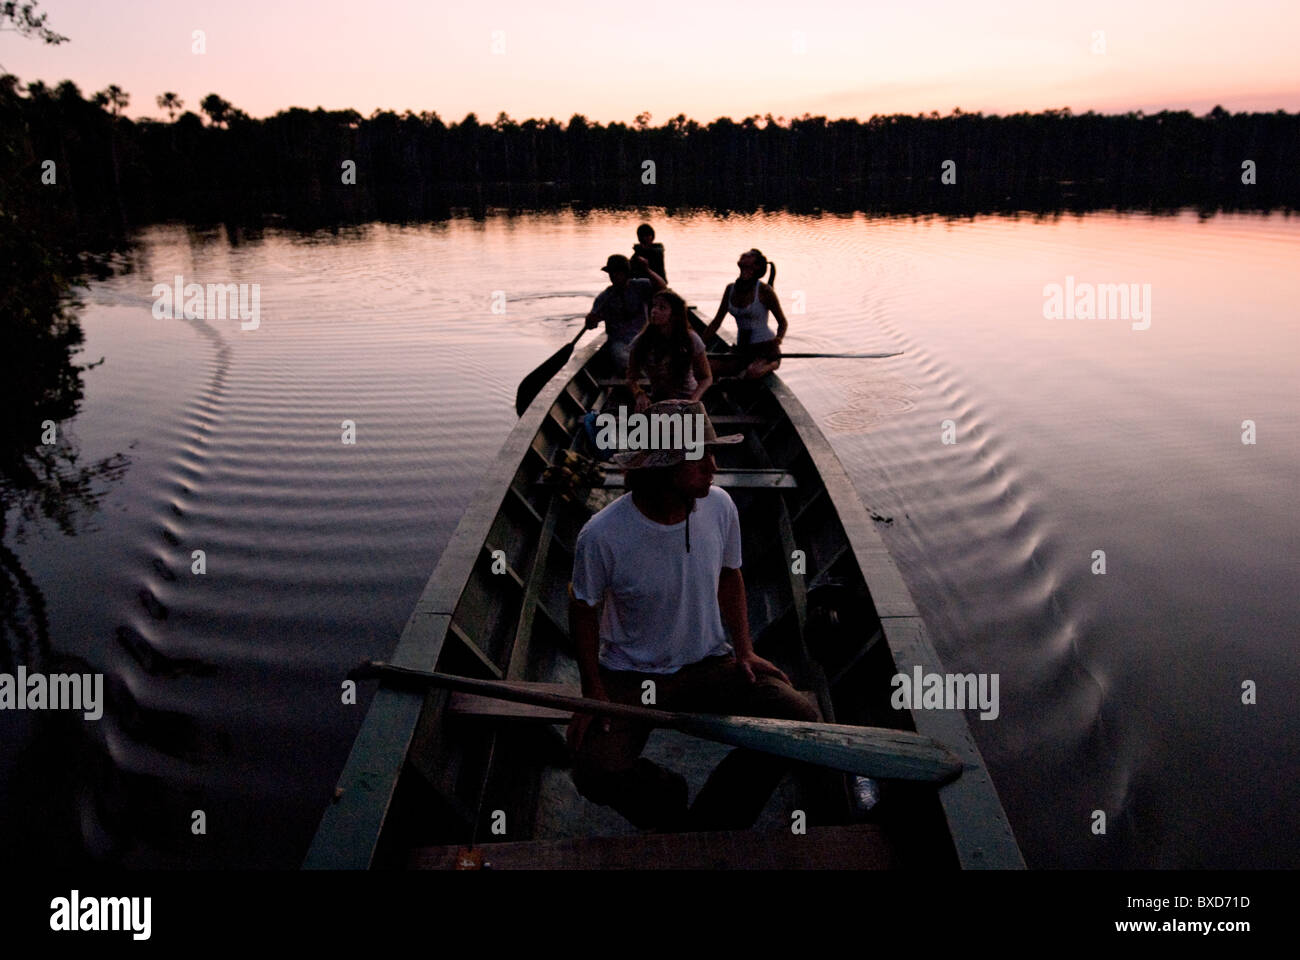 A group of young people paddling a canoe and having fun on lake sandoval at sunset. - Stock Image